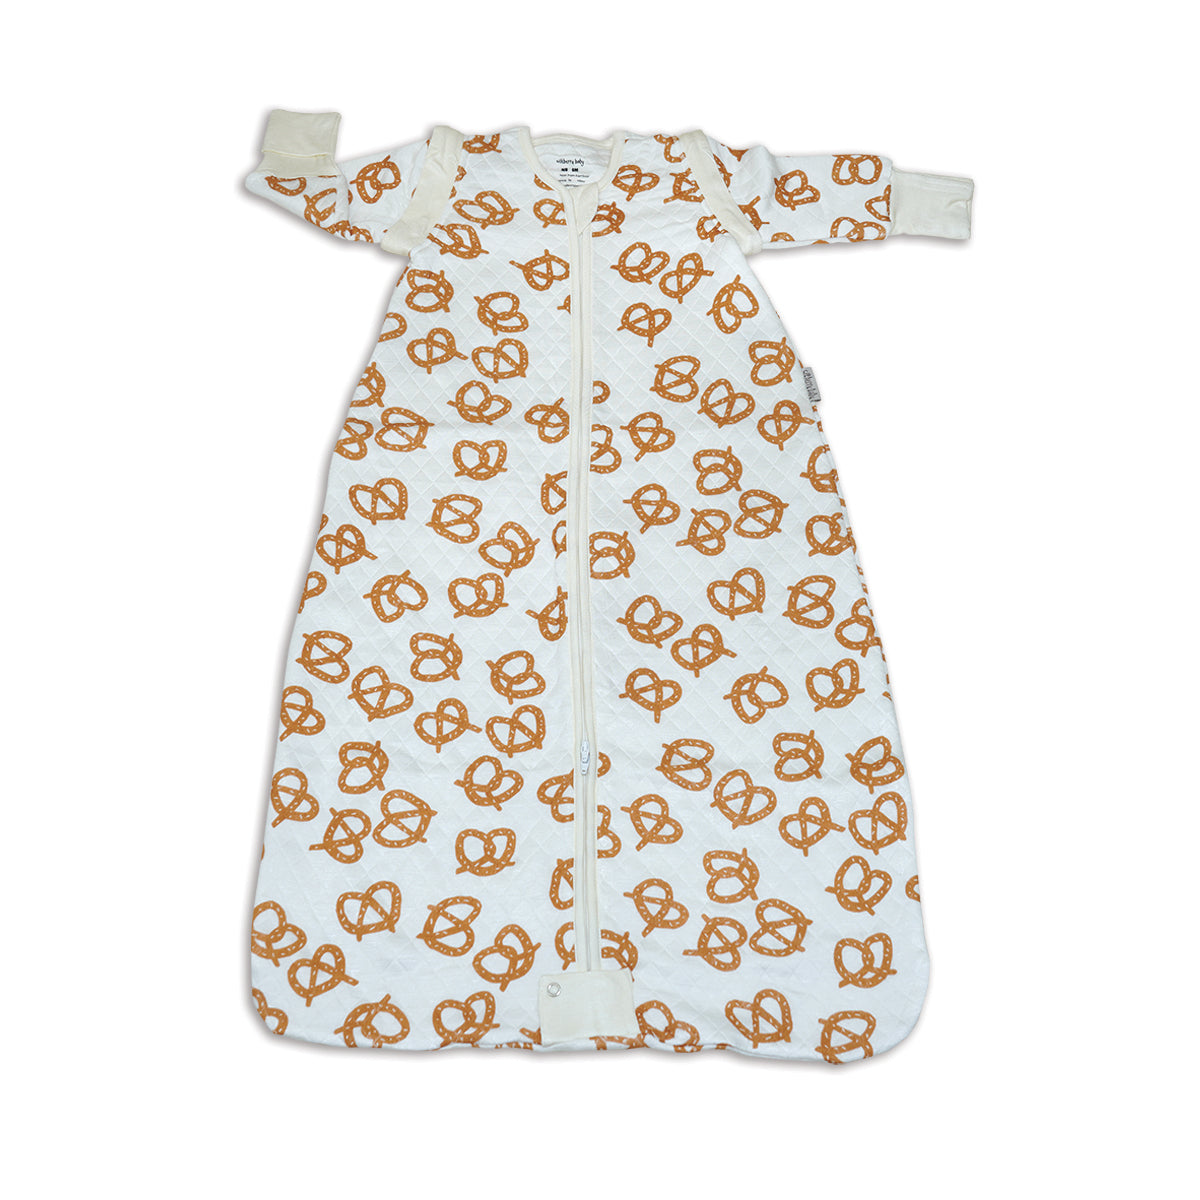 Pretzels Bamboo Classic Sleeping Sack w/Detachable Sleeves (1.0 TOG)